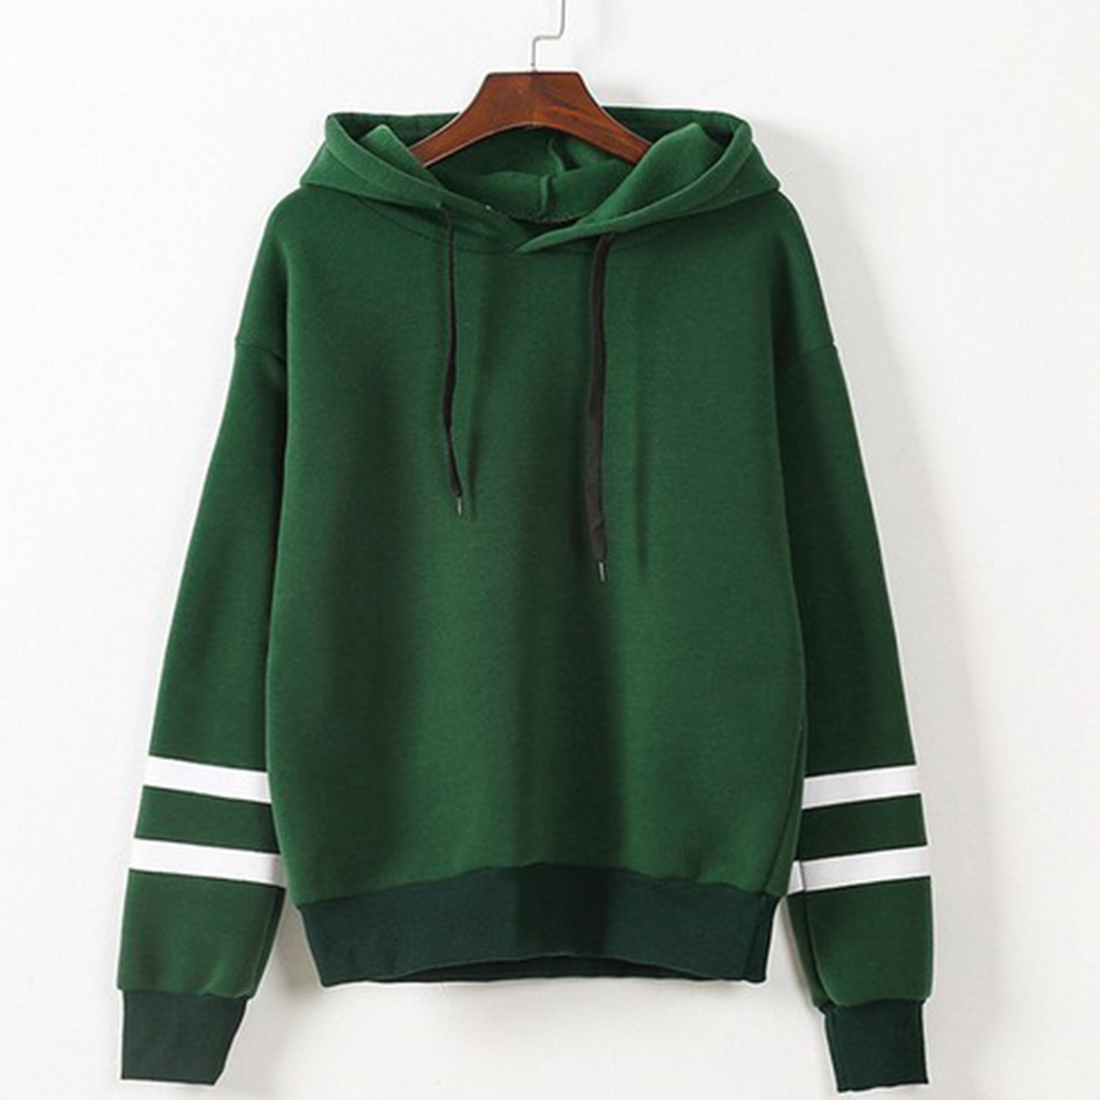 Hooded Autumn Pullovers Women Long Sleeve Loose Sweatshirts 2017 Plus Size Striped Patchwork Winter Hoodies Black Green Jumpers